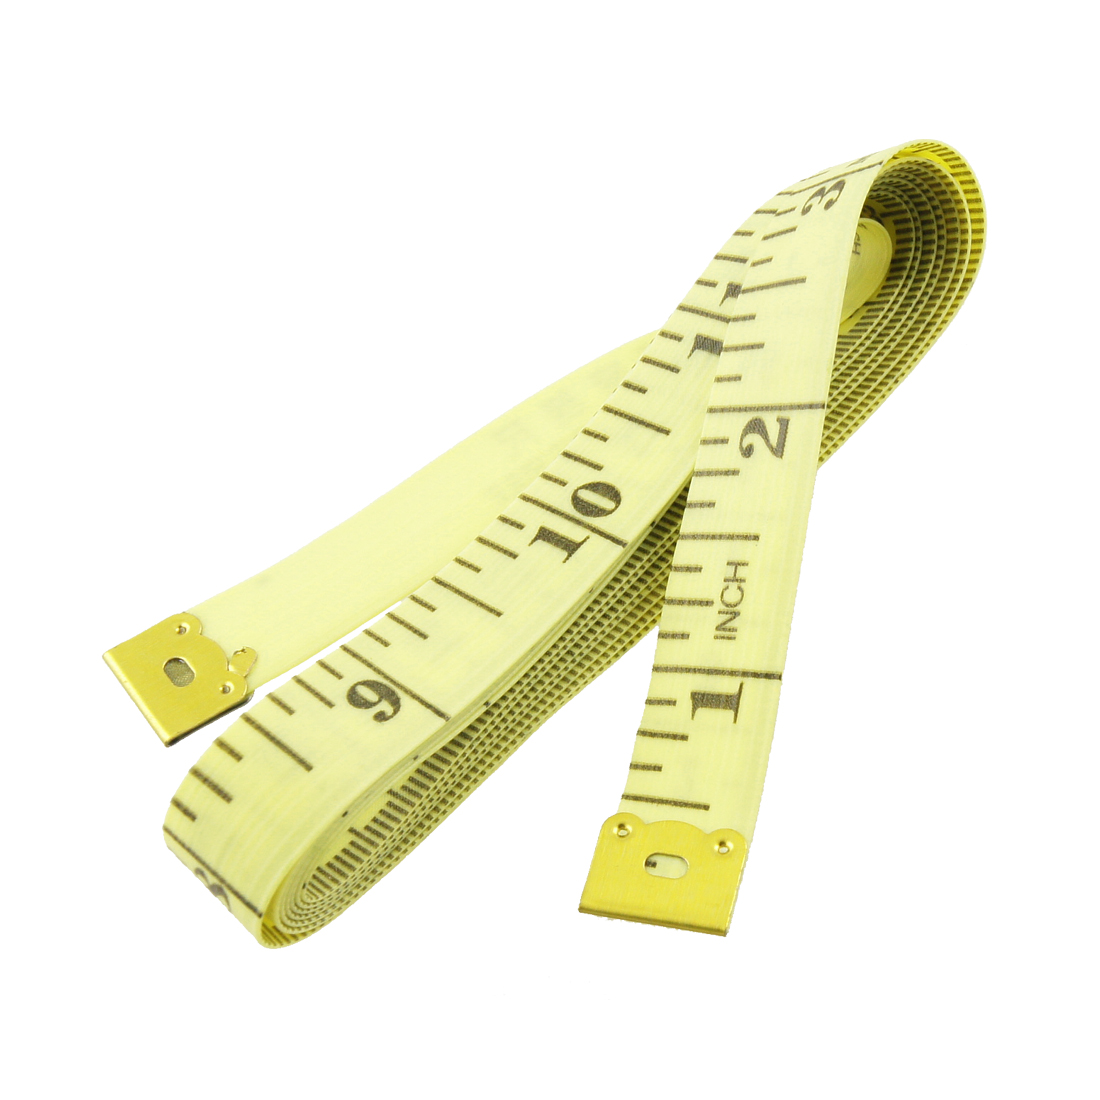 Unique Bargains 60-Inch Inch/Metric Tape Measure Tailor Sewing Cloth Ruler